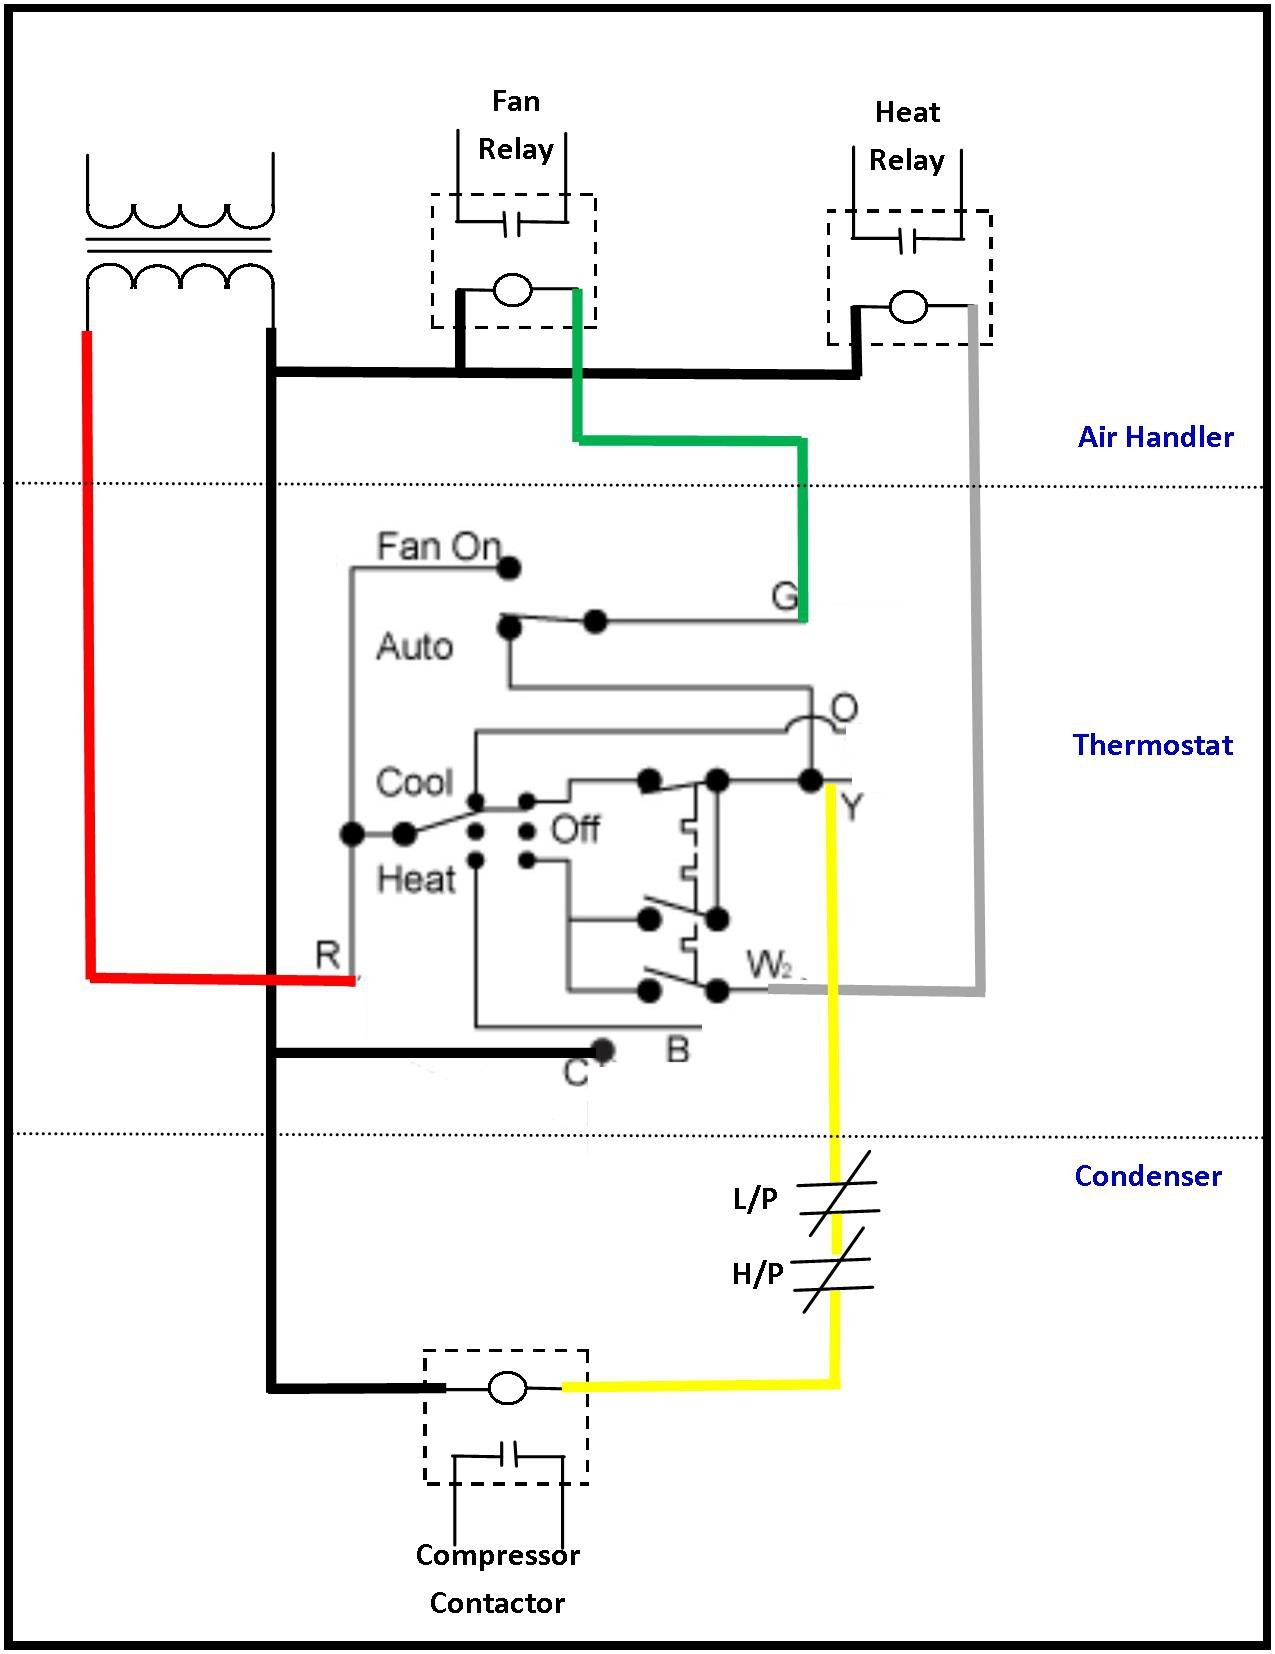 How to Wire A Transformer Diagram Acme Transformer Wiring Diagrams Inspirational Unusual 24v Of How to Wire A Transformer Diagram